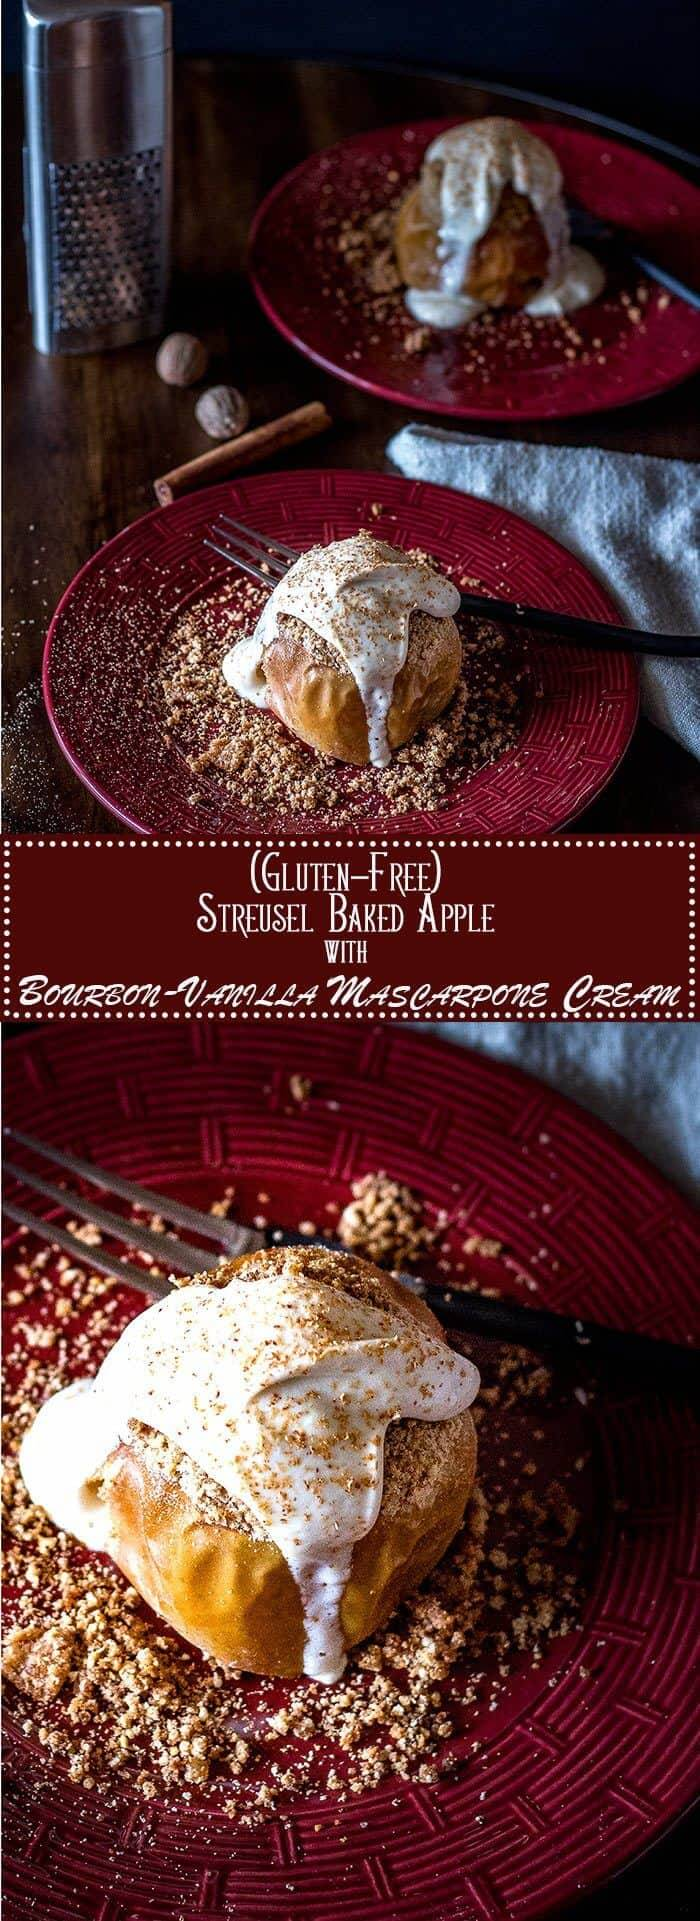 Looking for a special holiday dessert for a smaller party? Streusel Baked apples with Bourbon Vanilla Mascarpone Cream tastes